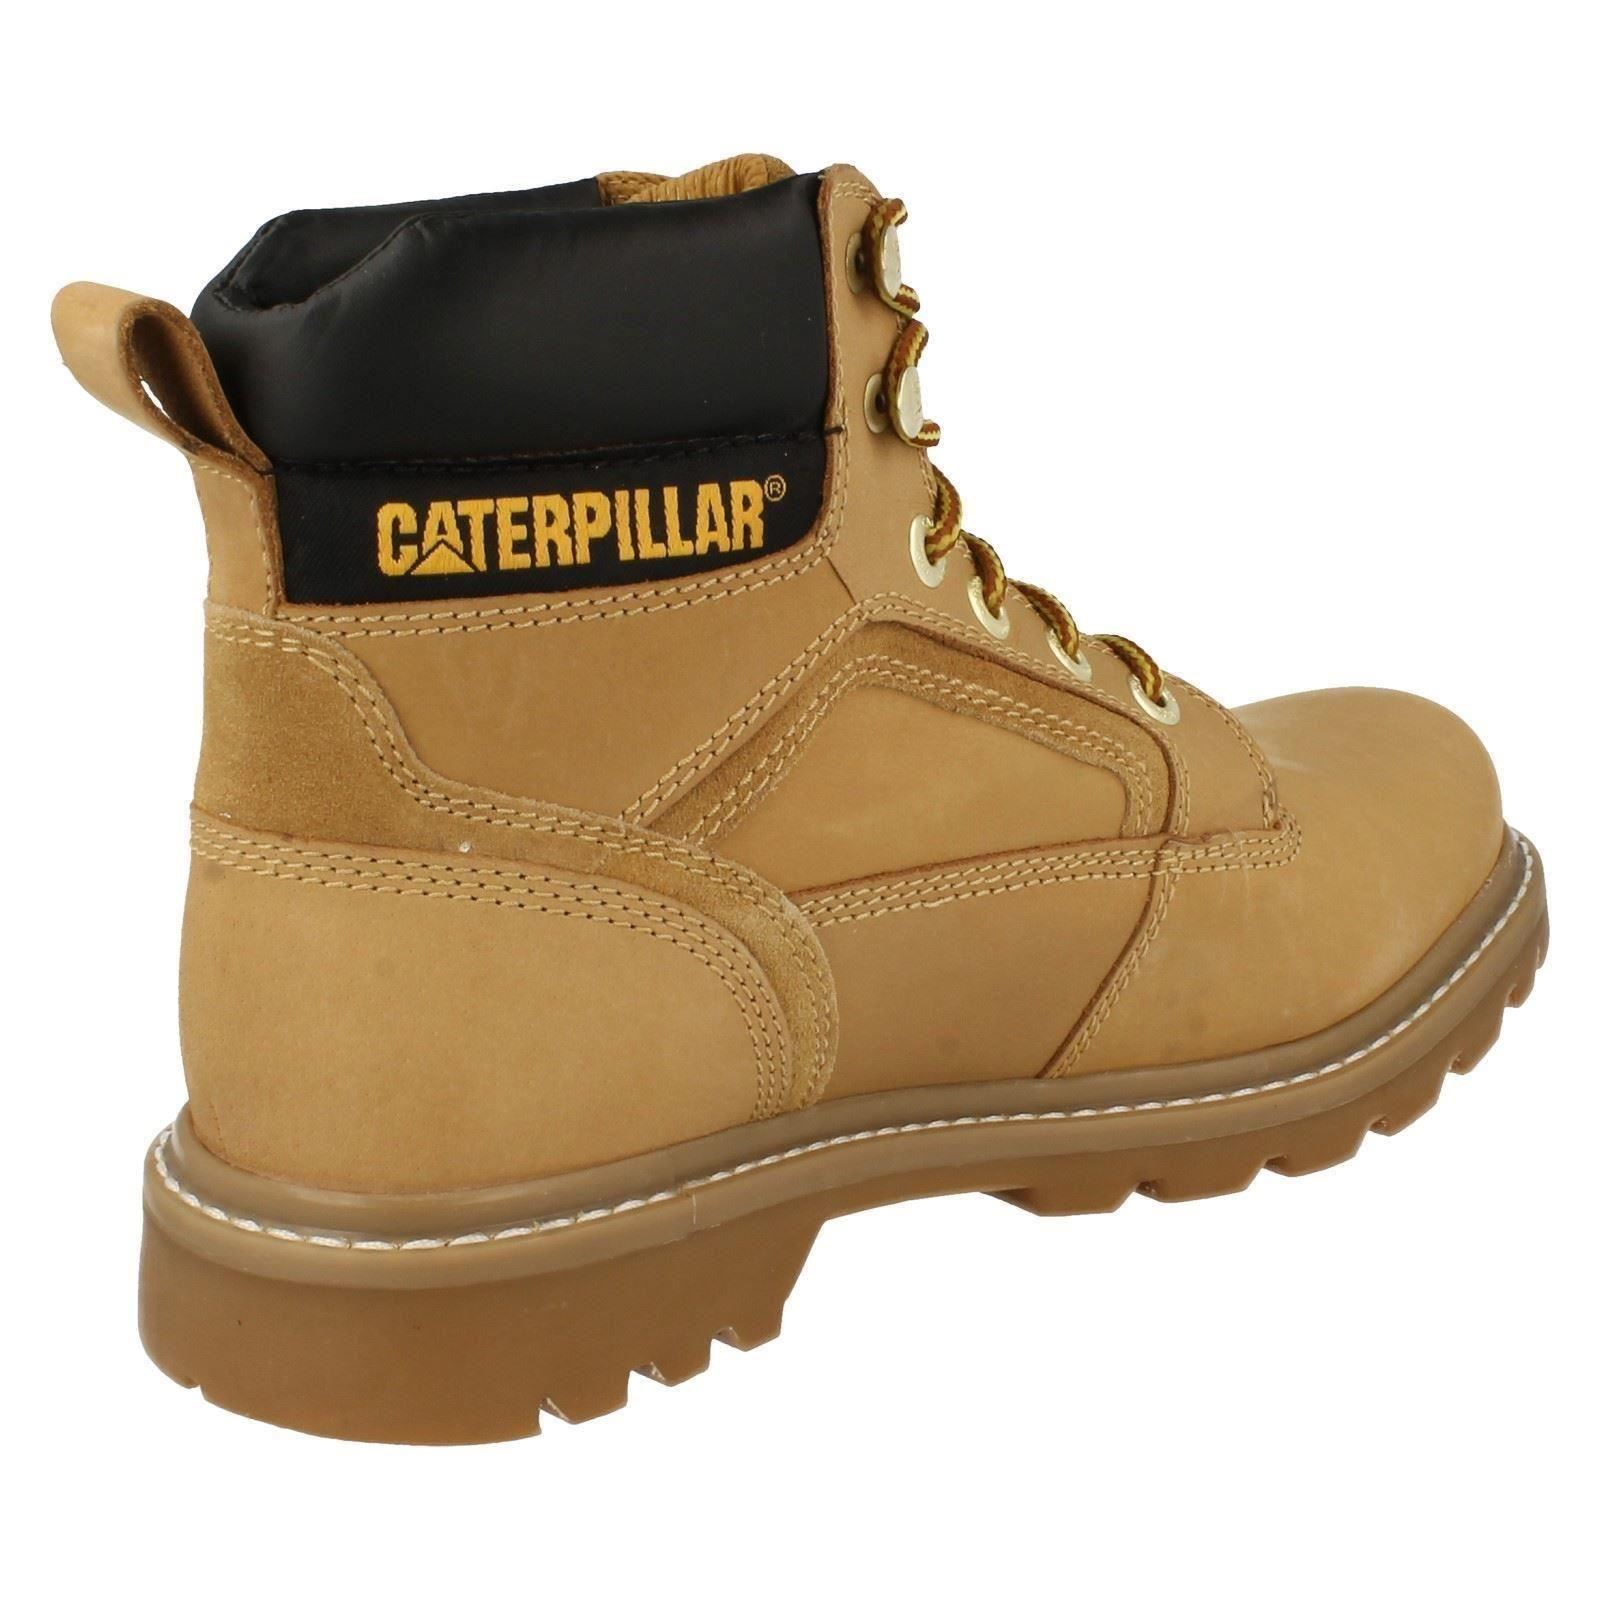 beige Botines Honey Stickshift hombre casuales para Caterpillar TqUT7Yw